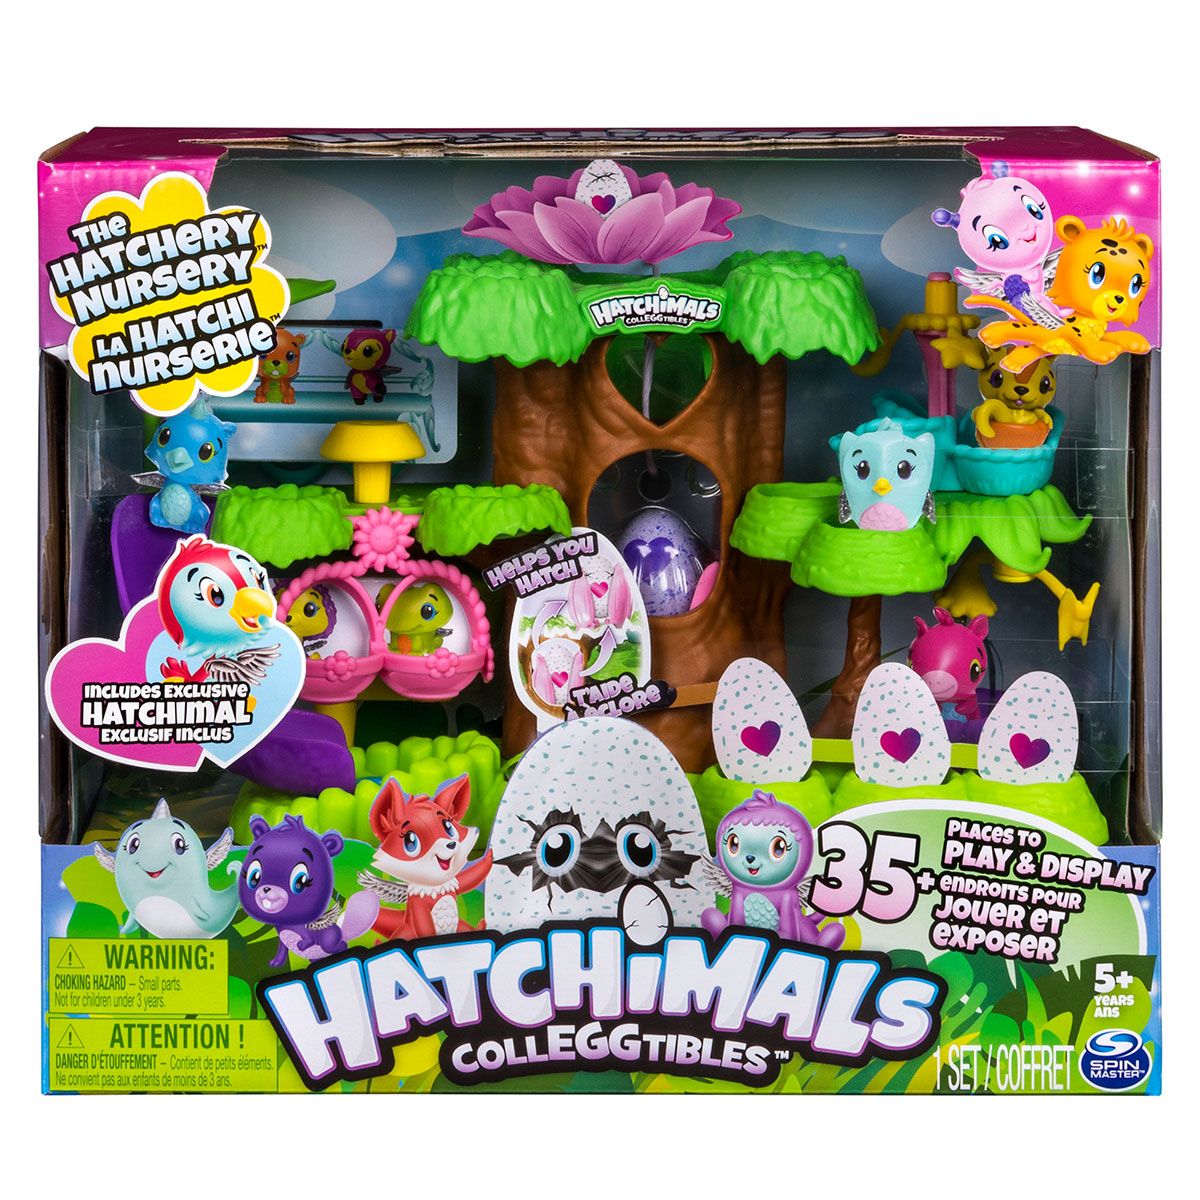 Image of   Hatchimals Colleggtibles legesæt - The Hatchery Nursery